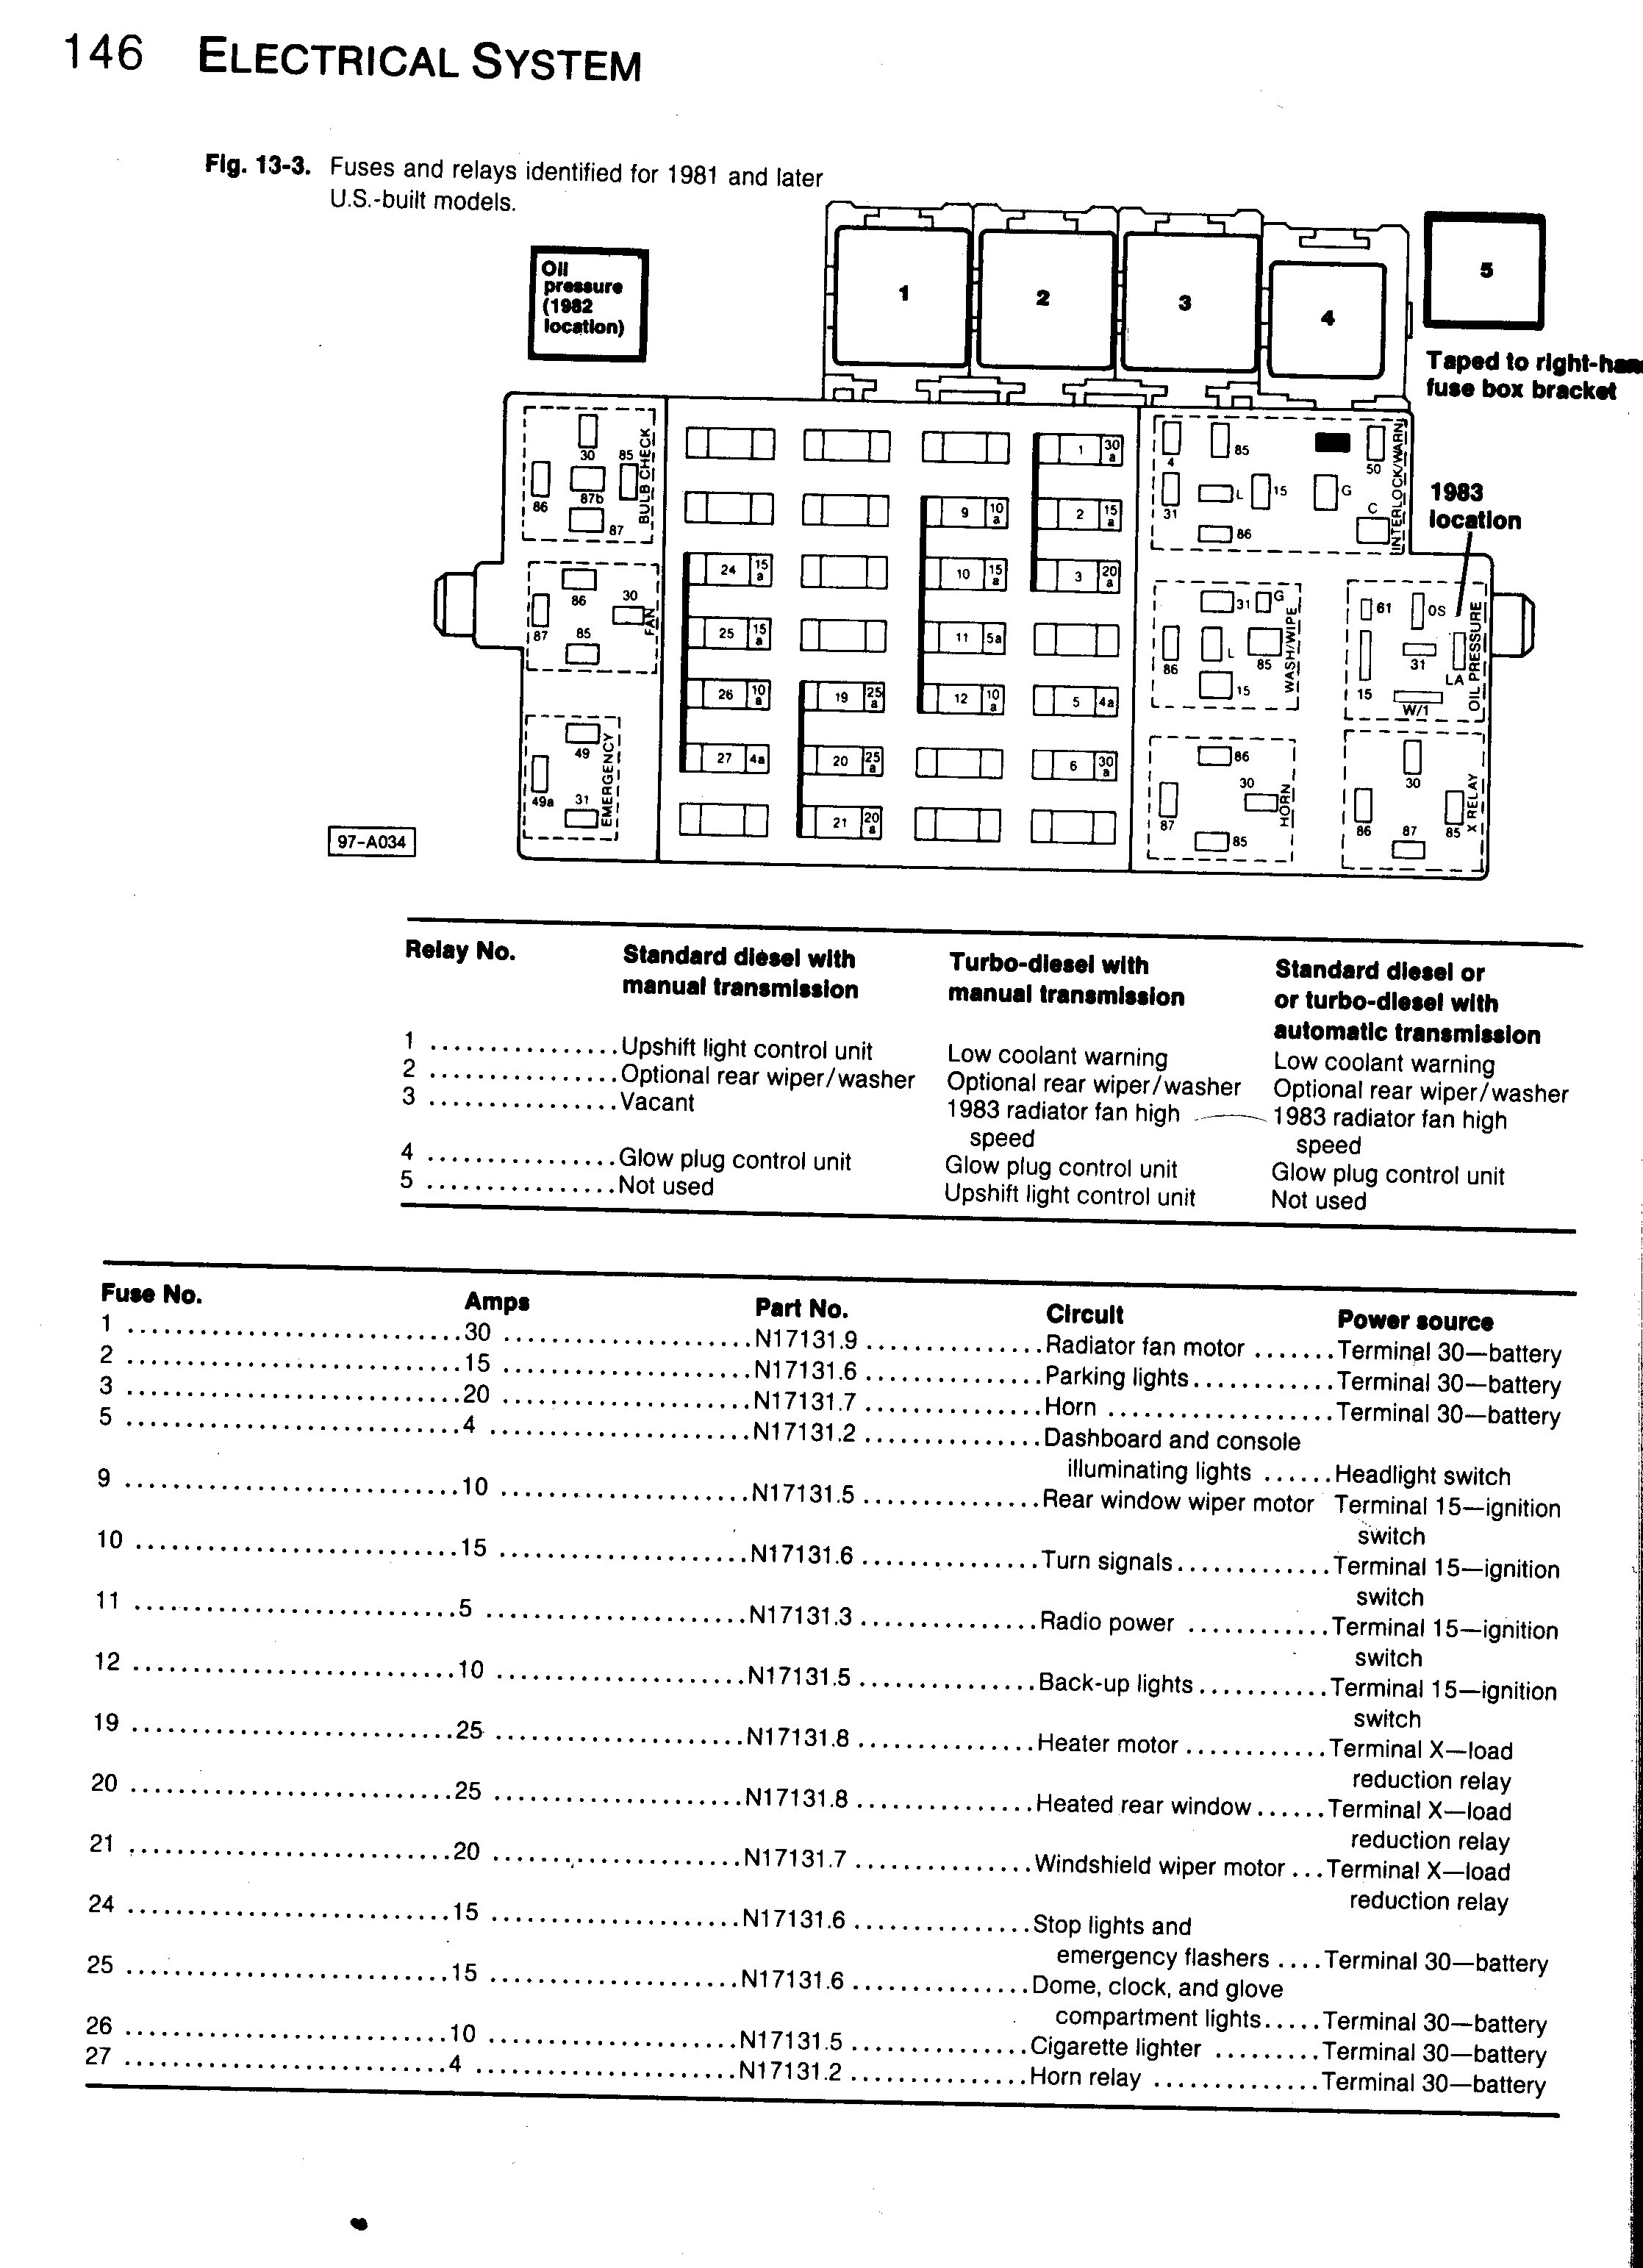 2010 Ford Fusion Interior Fuse Box Diagram Worksheet And Wiring 02 Taurus Location 2013 E350 Detailed Schematics Rh Jppastryarts Com Owners Manual Pdf